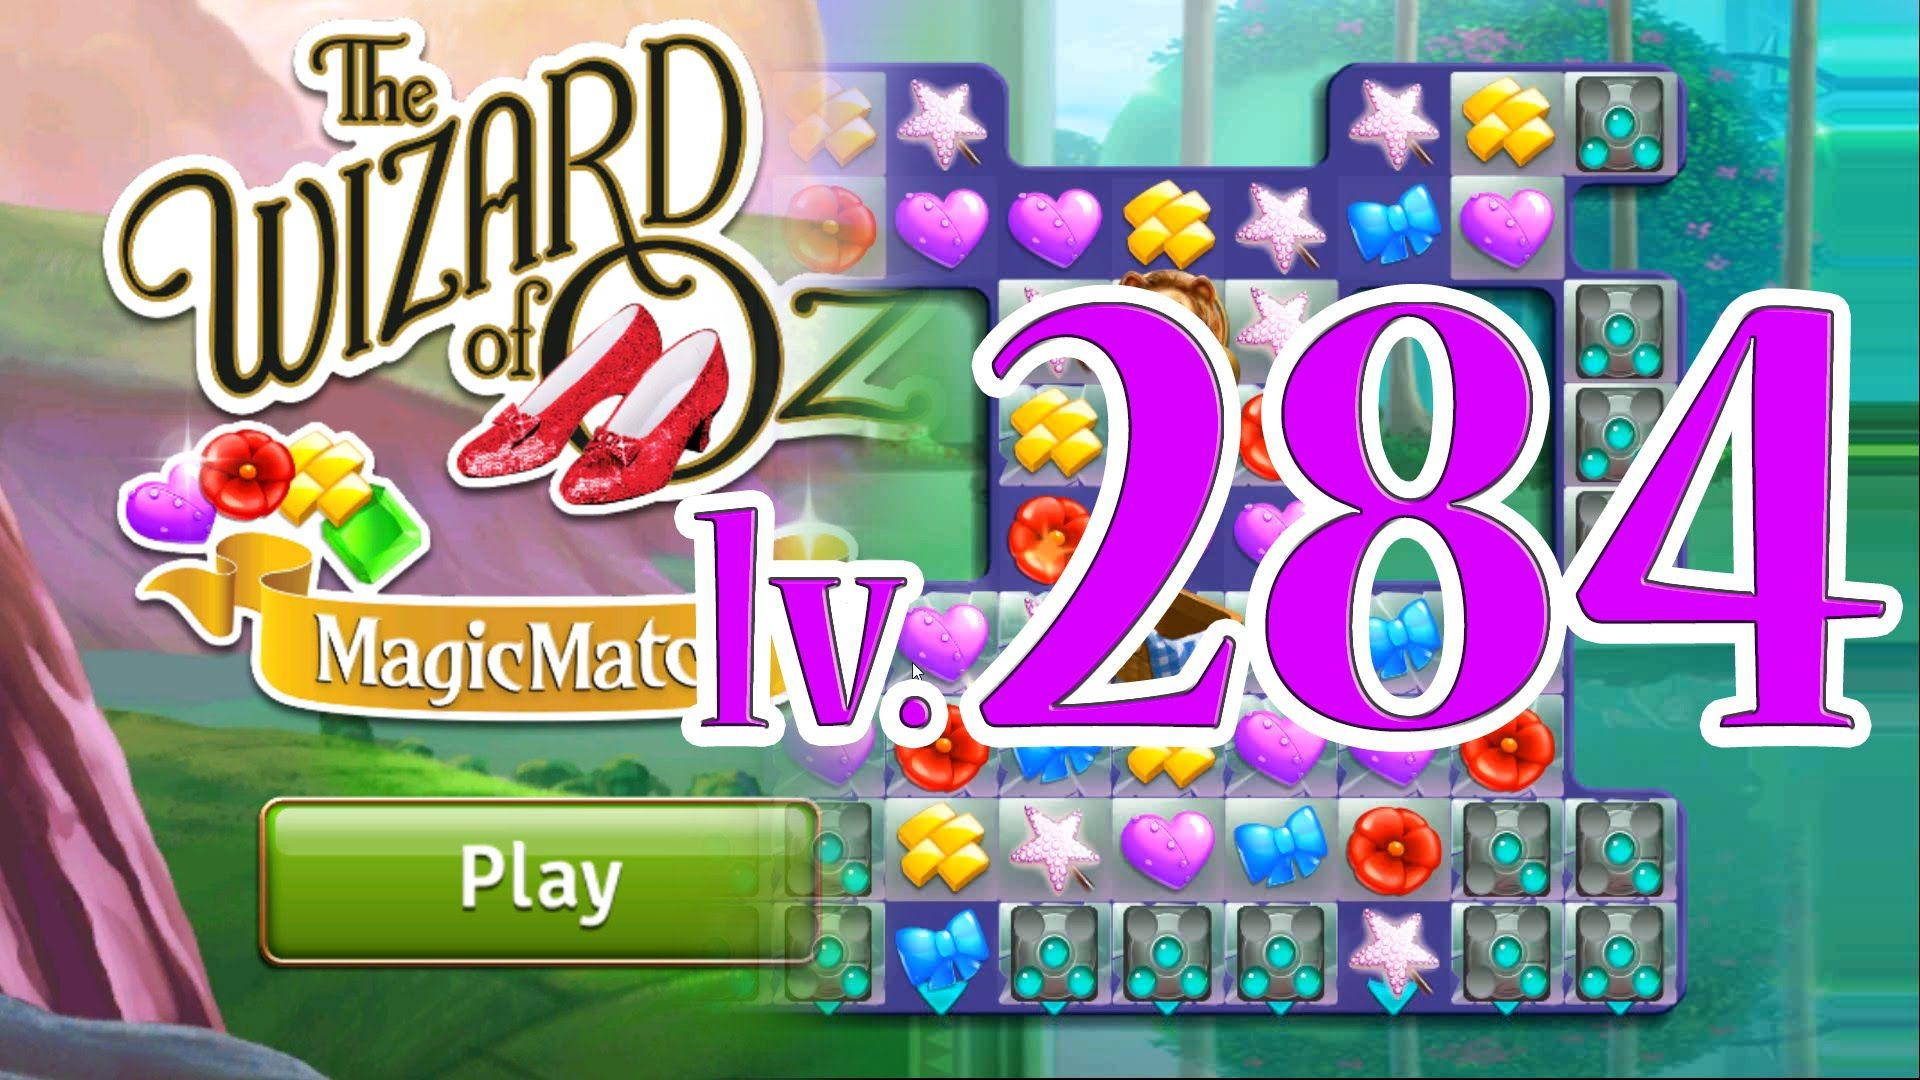 Wizard of Oz: Magic Match - Level 284 (1080/60fps)